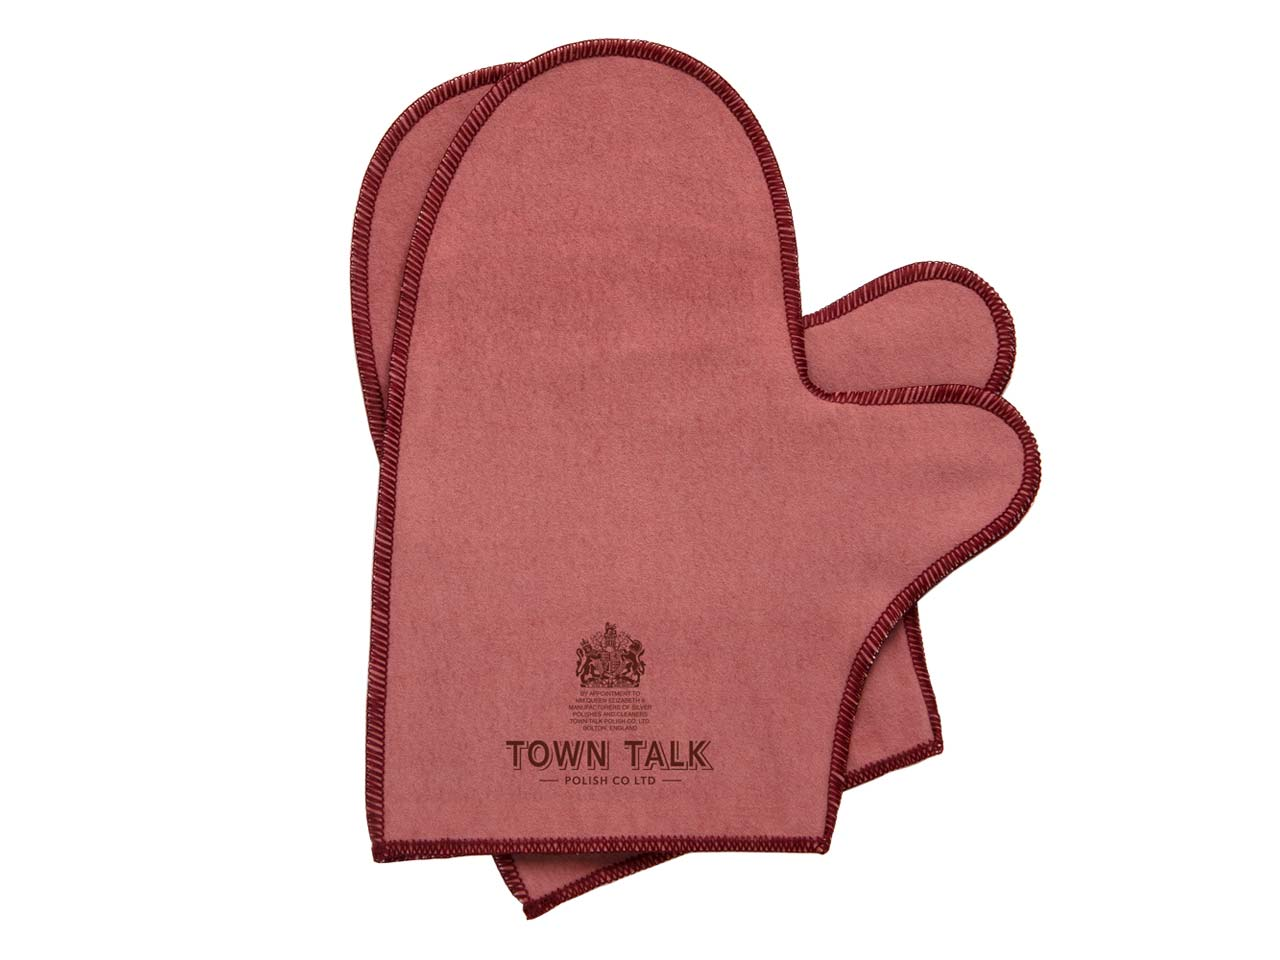 Town Talk Gold Polishing Mitts